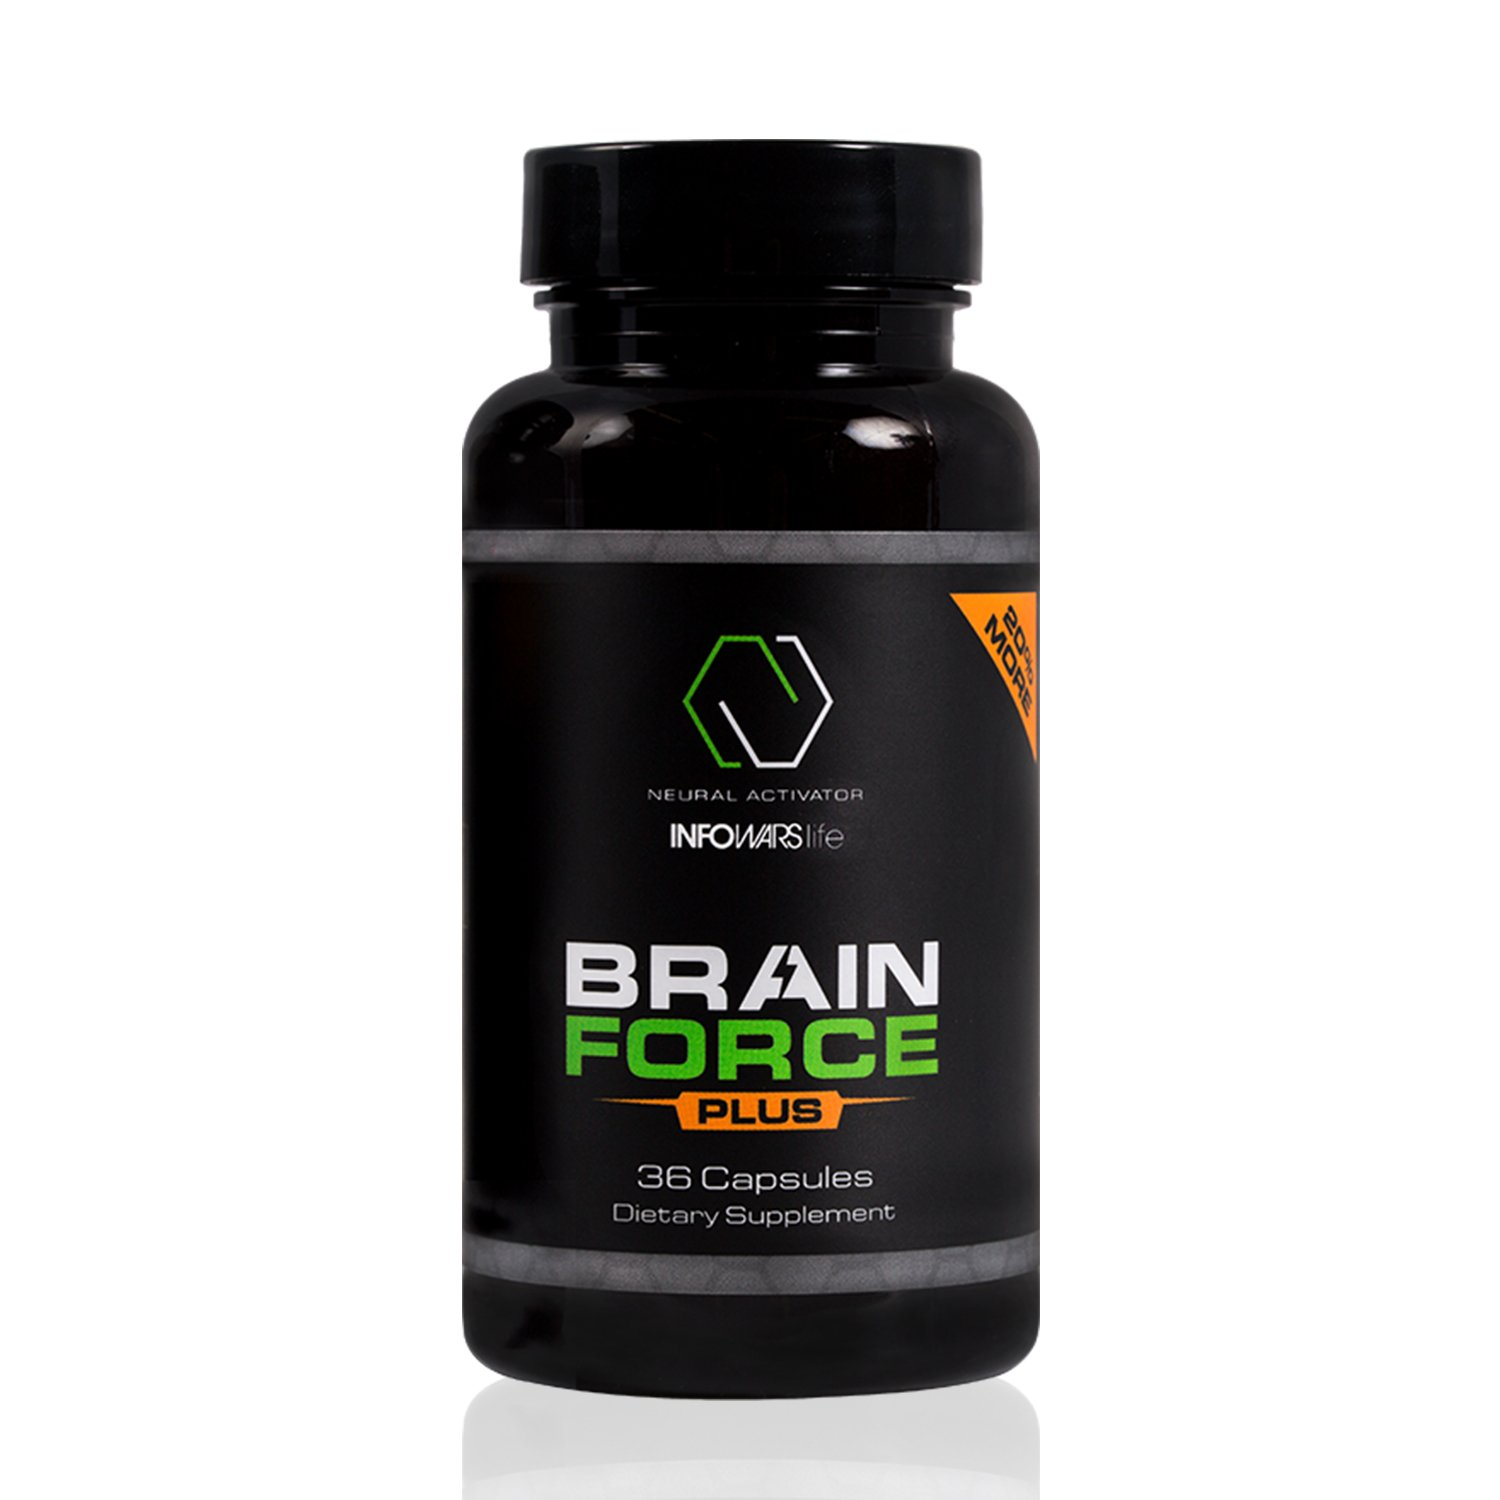 Infowars Life - Brain Force Plus (36 Capsules) - Powerful Nootropic for Memory, Focus, and Mental Clarity by Infowars Life